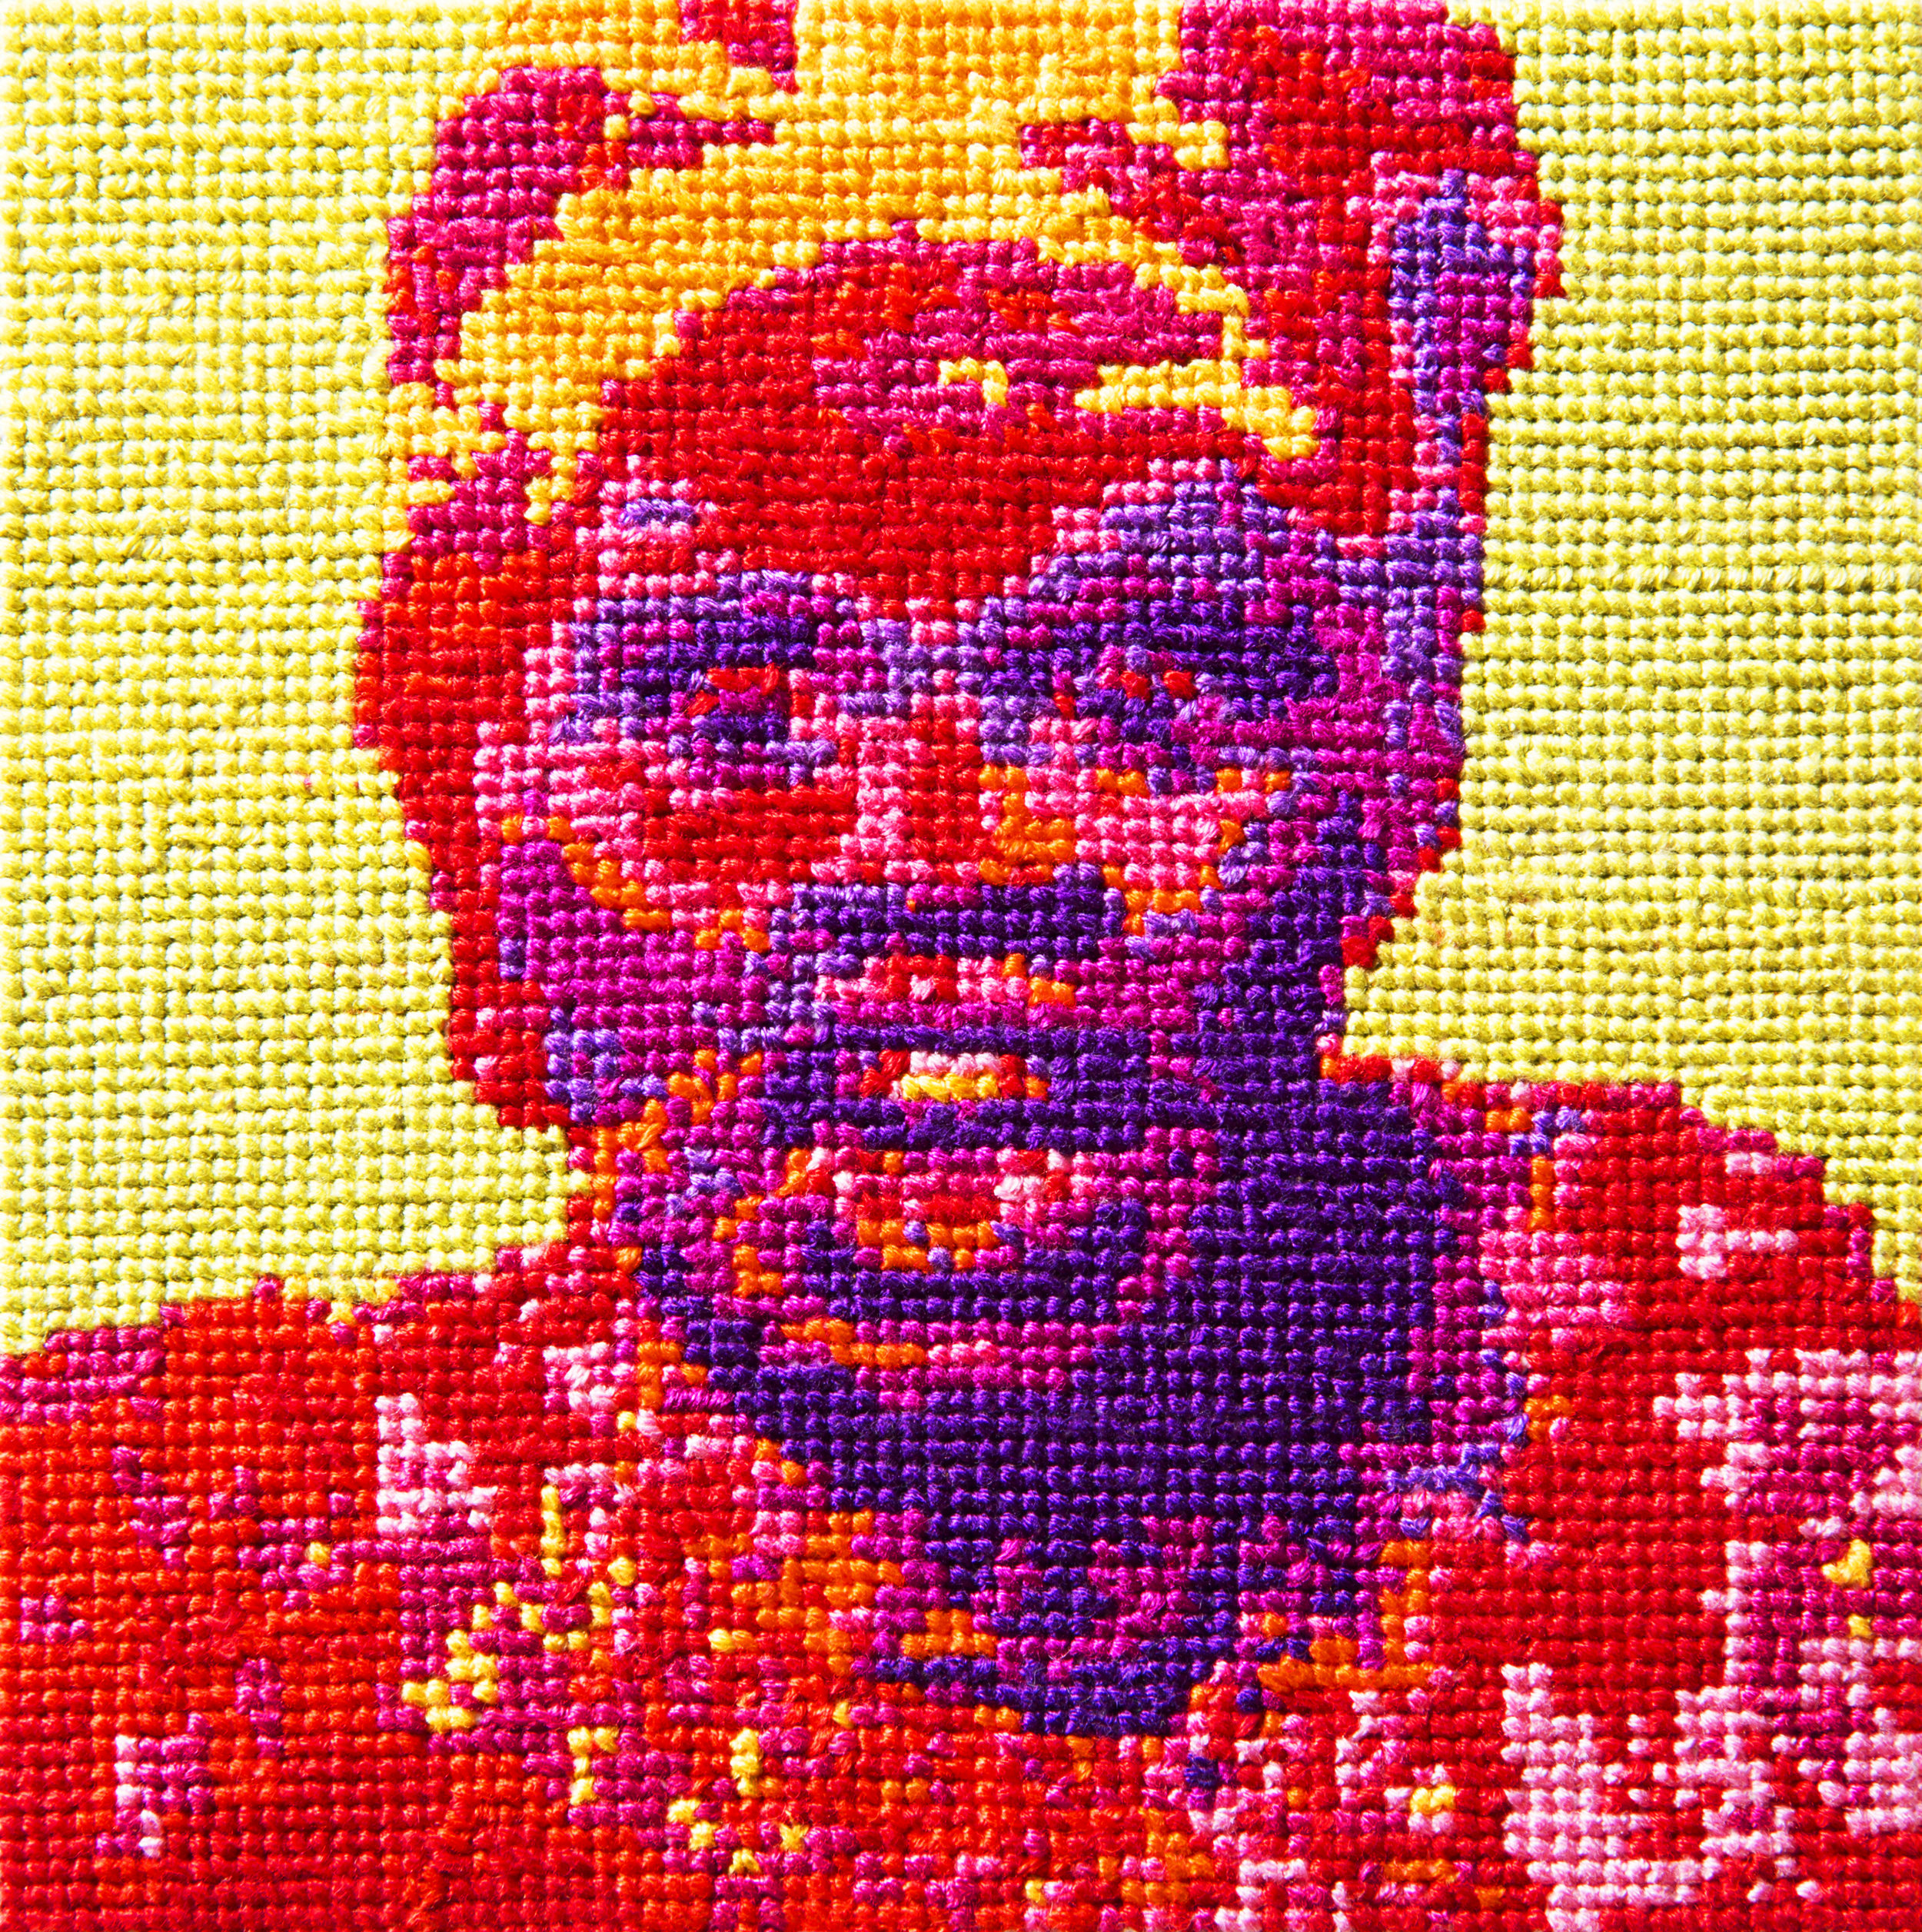 Frame 11   By Olisa Corcoran  Cotton thread on aida cloth  5 x 5 inches  2013